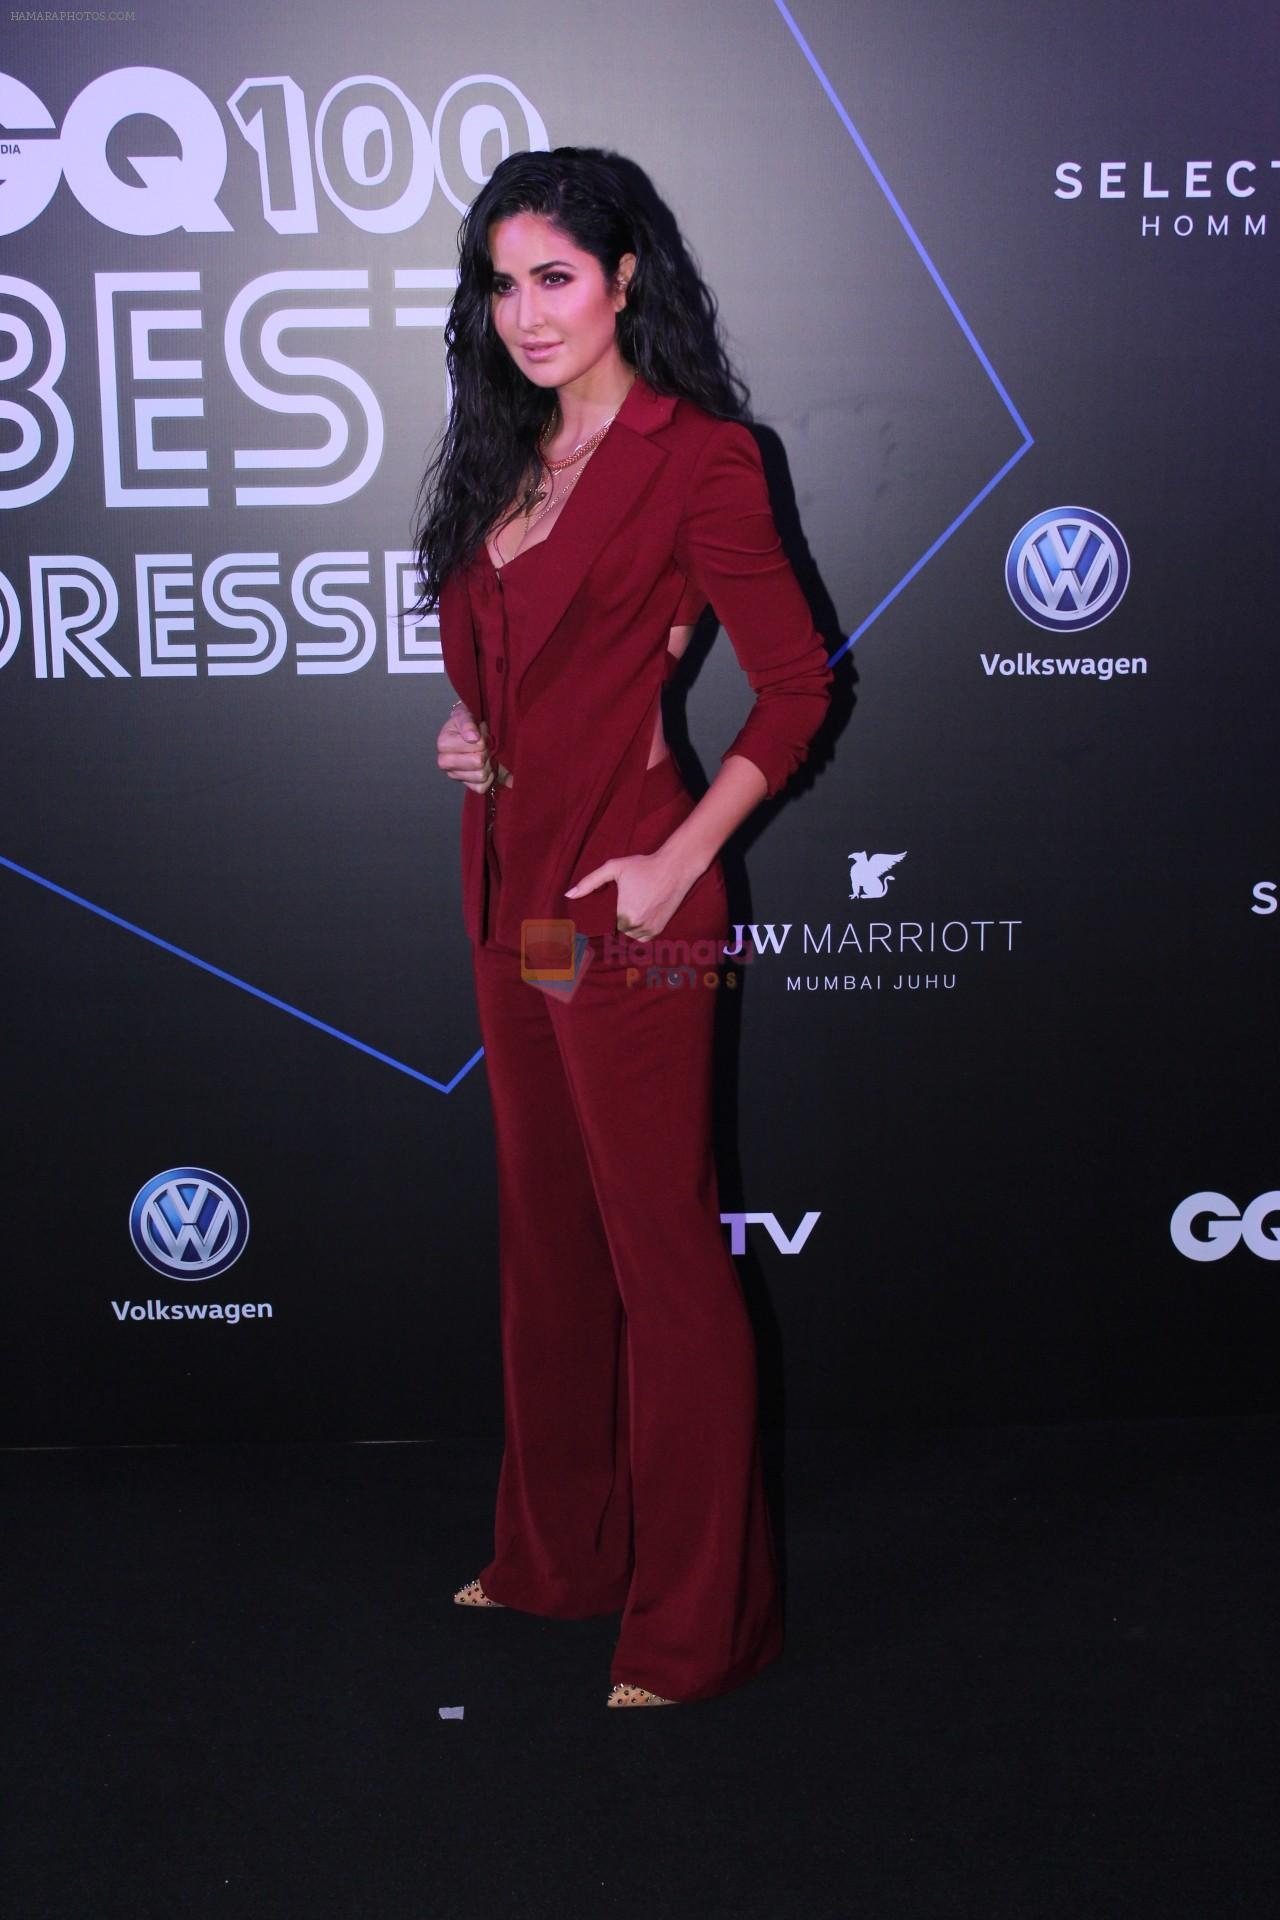 Katrina Kaif at GQ 100 Best Dressed Awards 2019 on 2nd June 2019